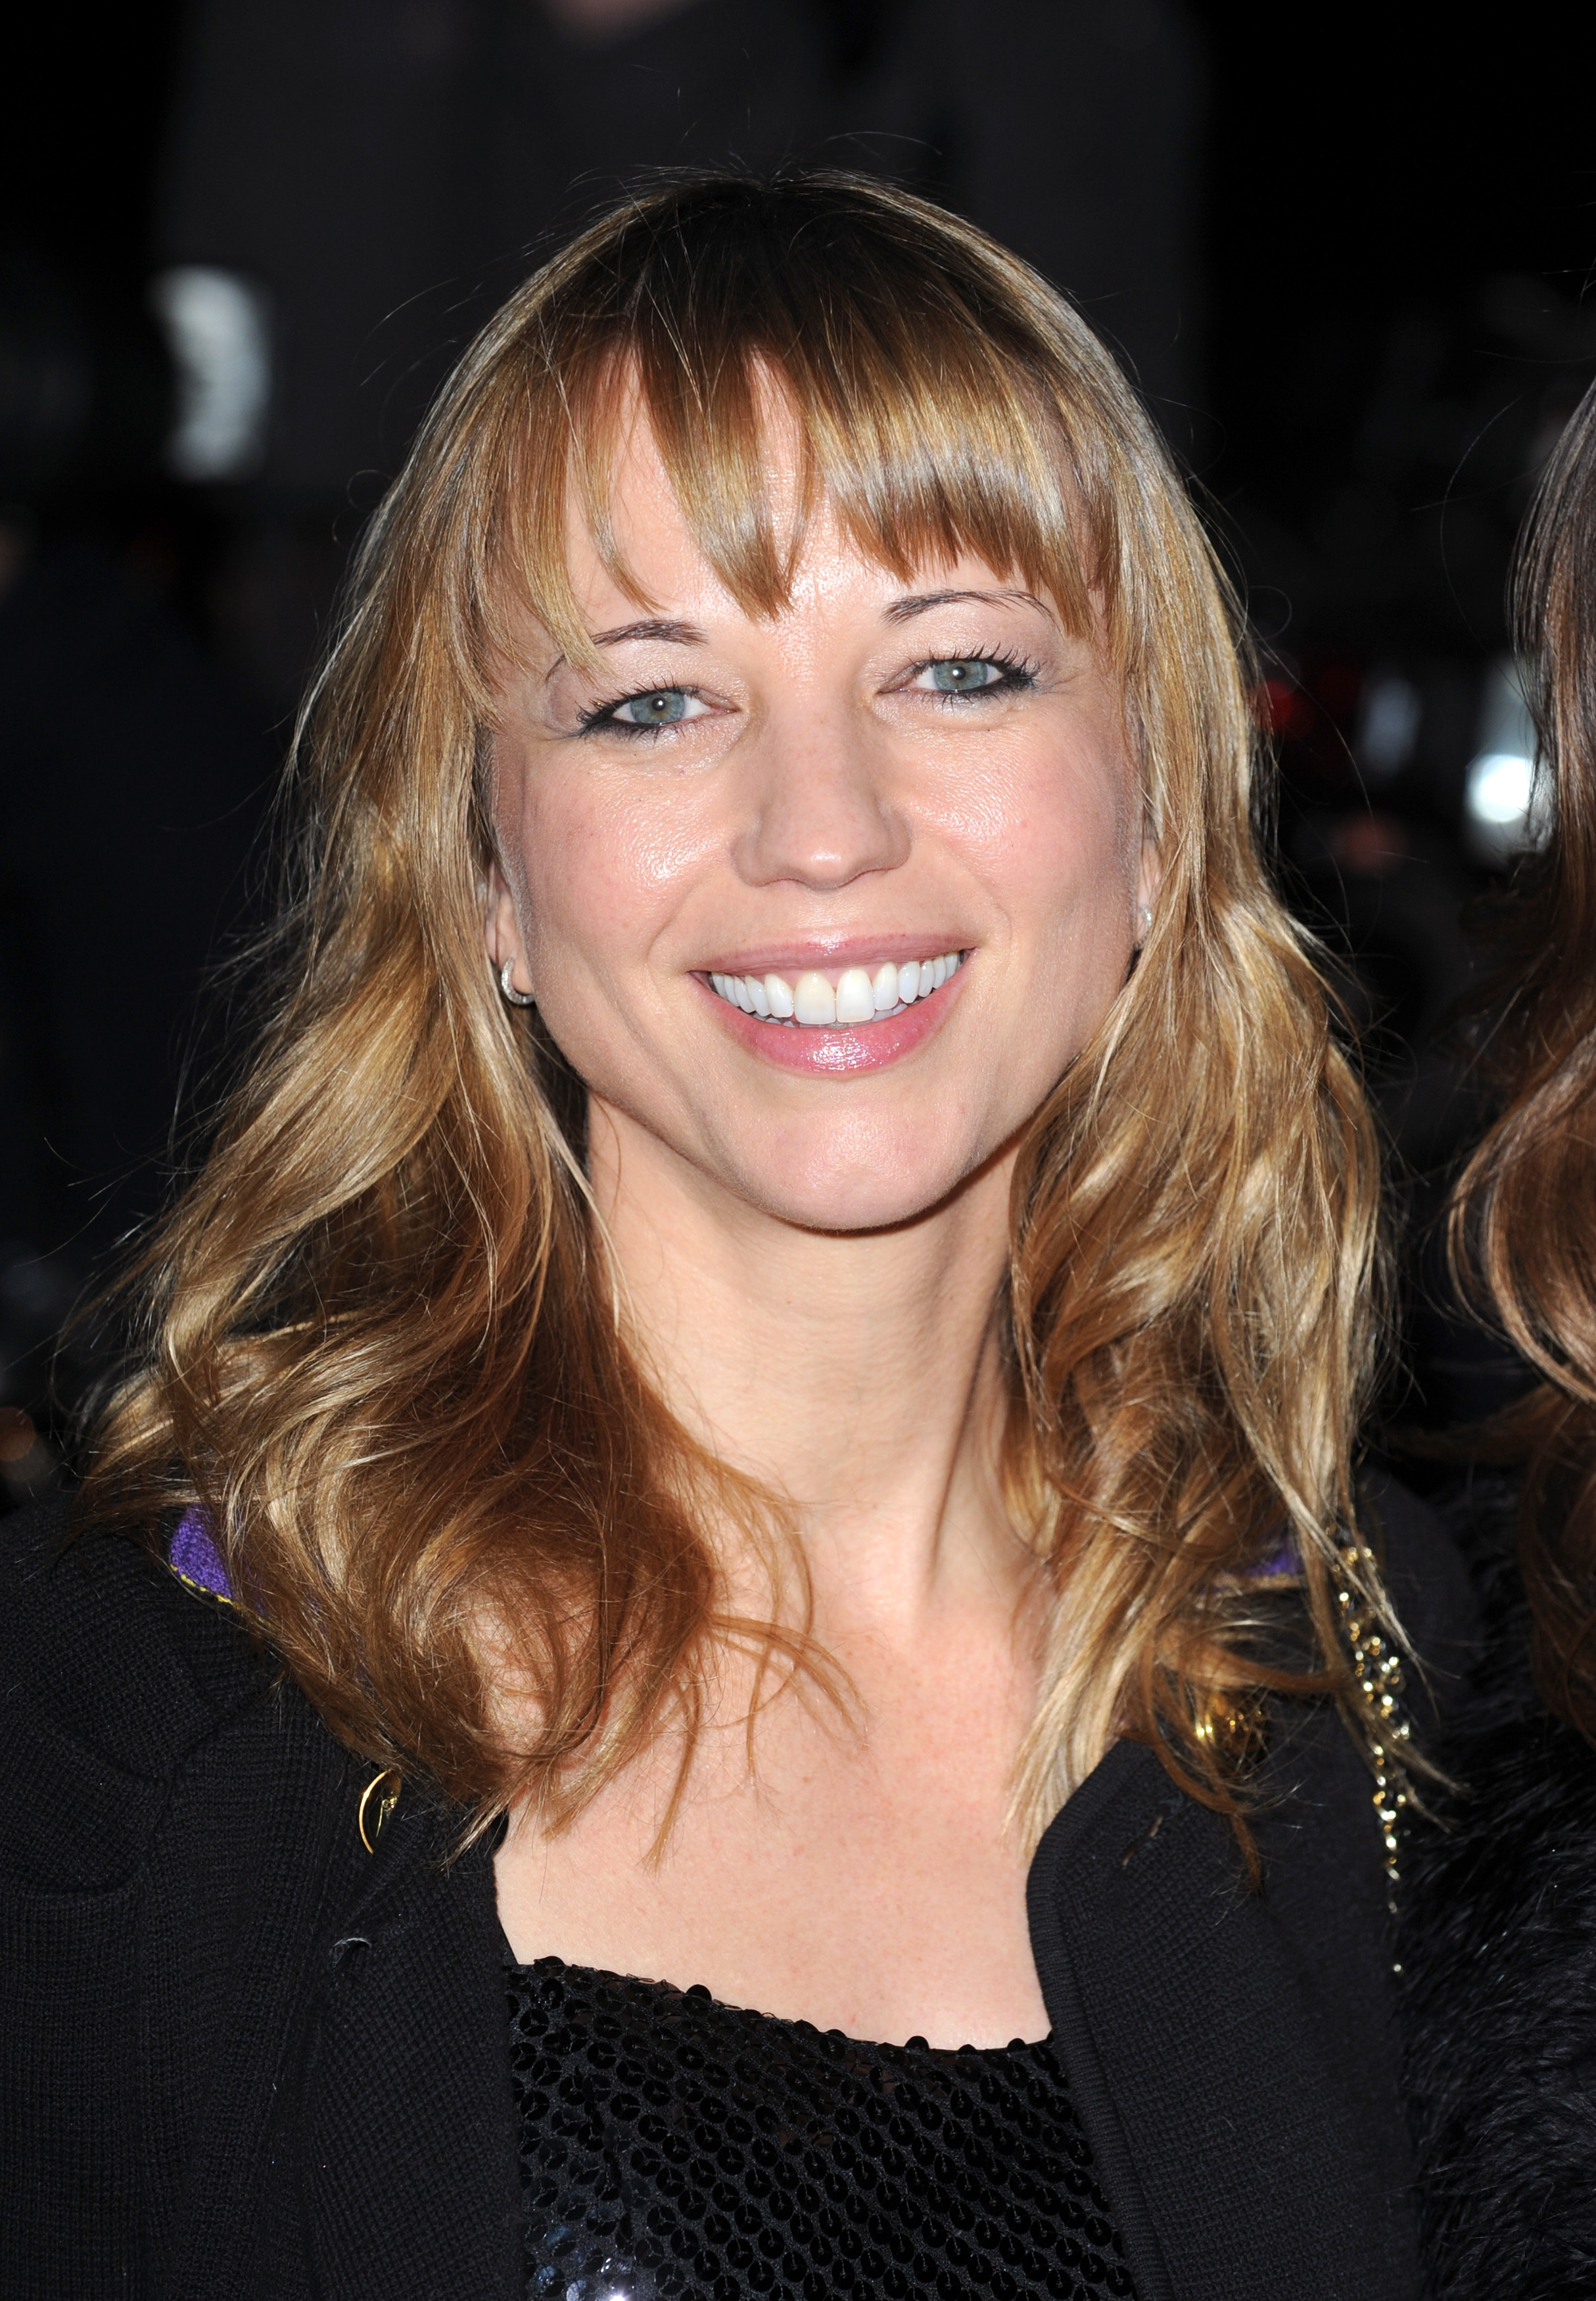 Sara Cox, mum to Lola, Isaac and Renee